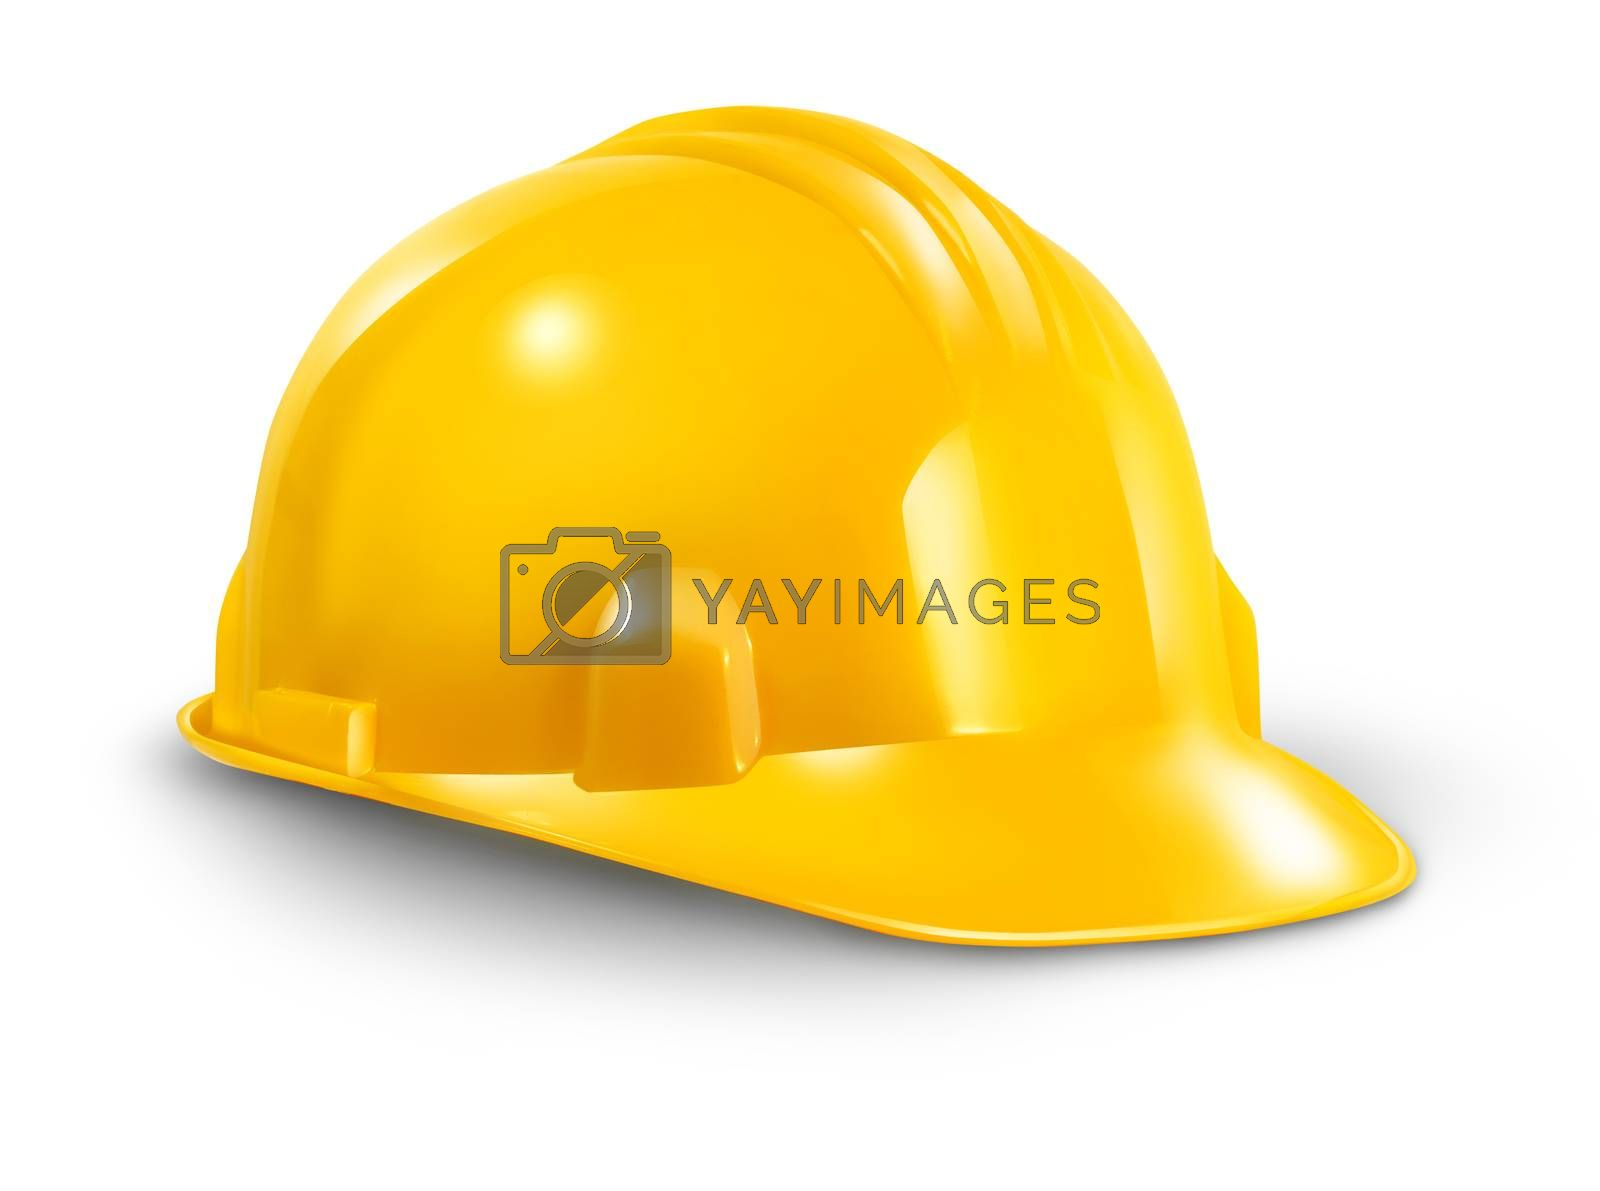 Construction hard hat as a work safety symbol of the renovations and home improvement builder industry on a white background.